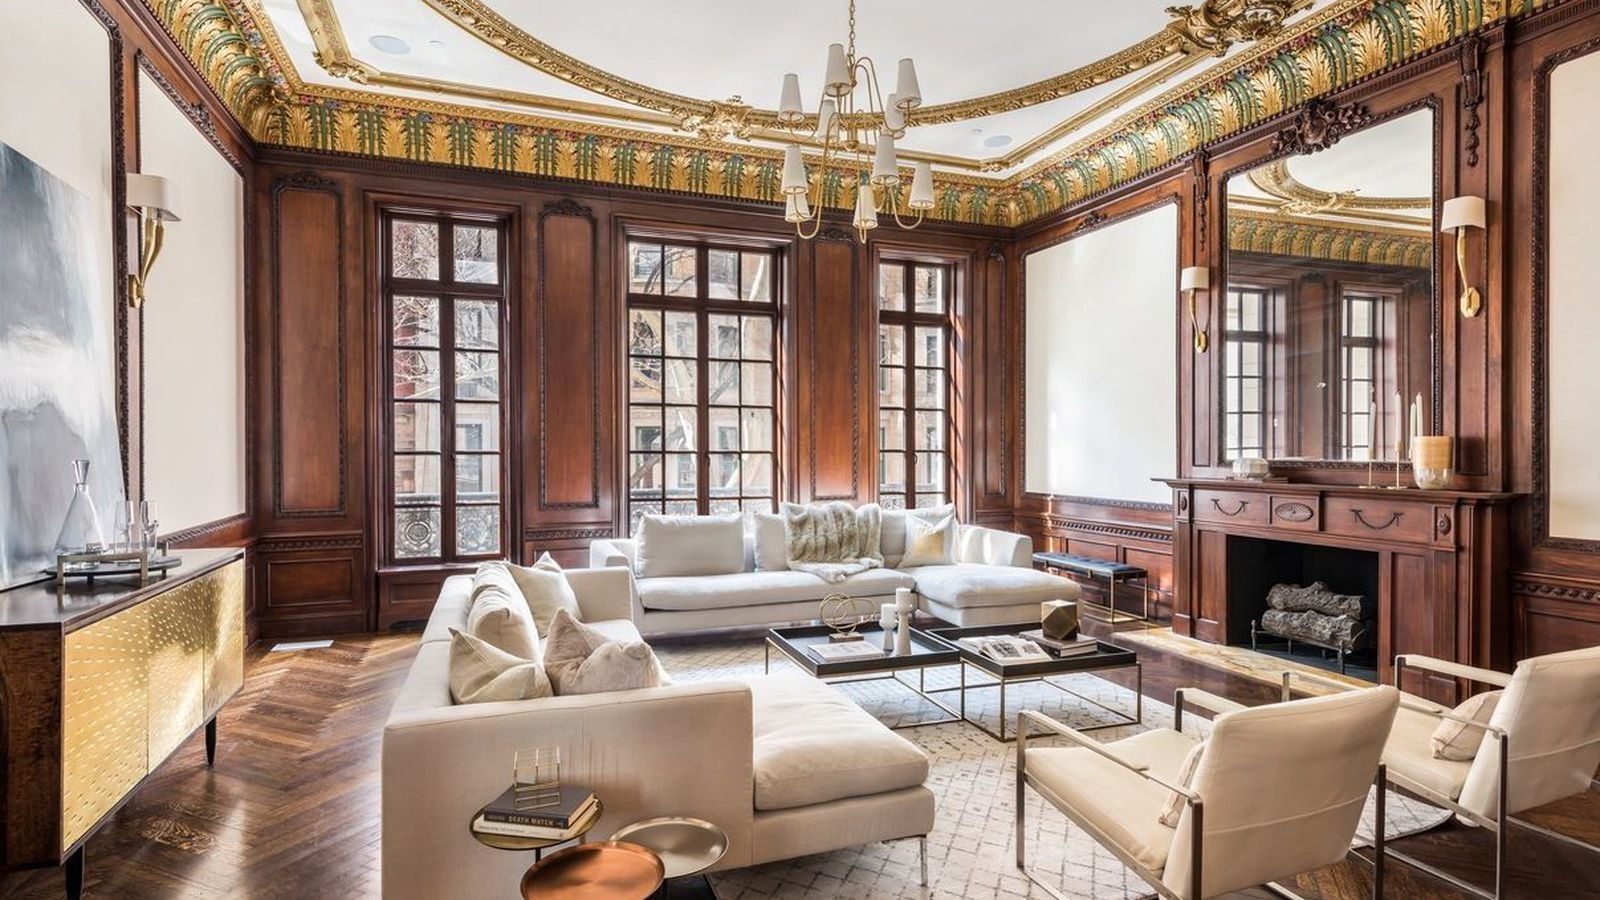 Historic Upper West Side Mansion Near Central Park Seeks